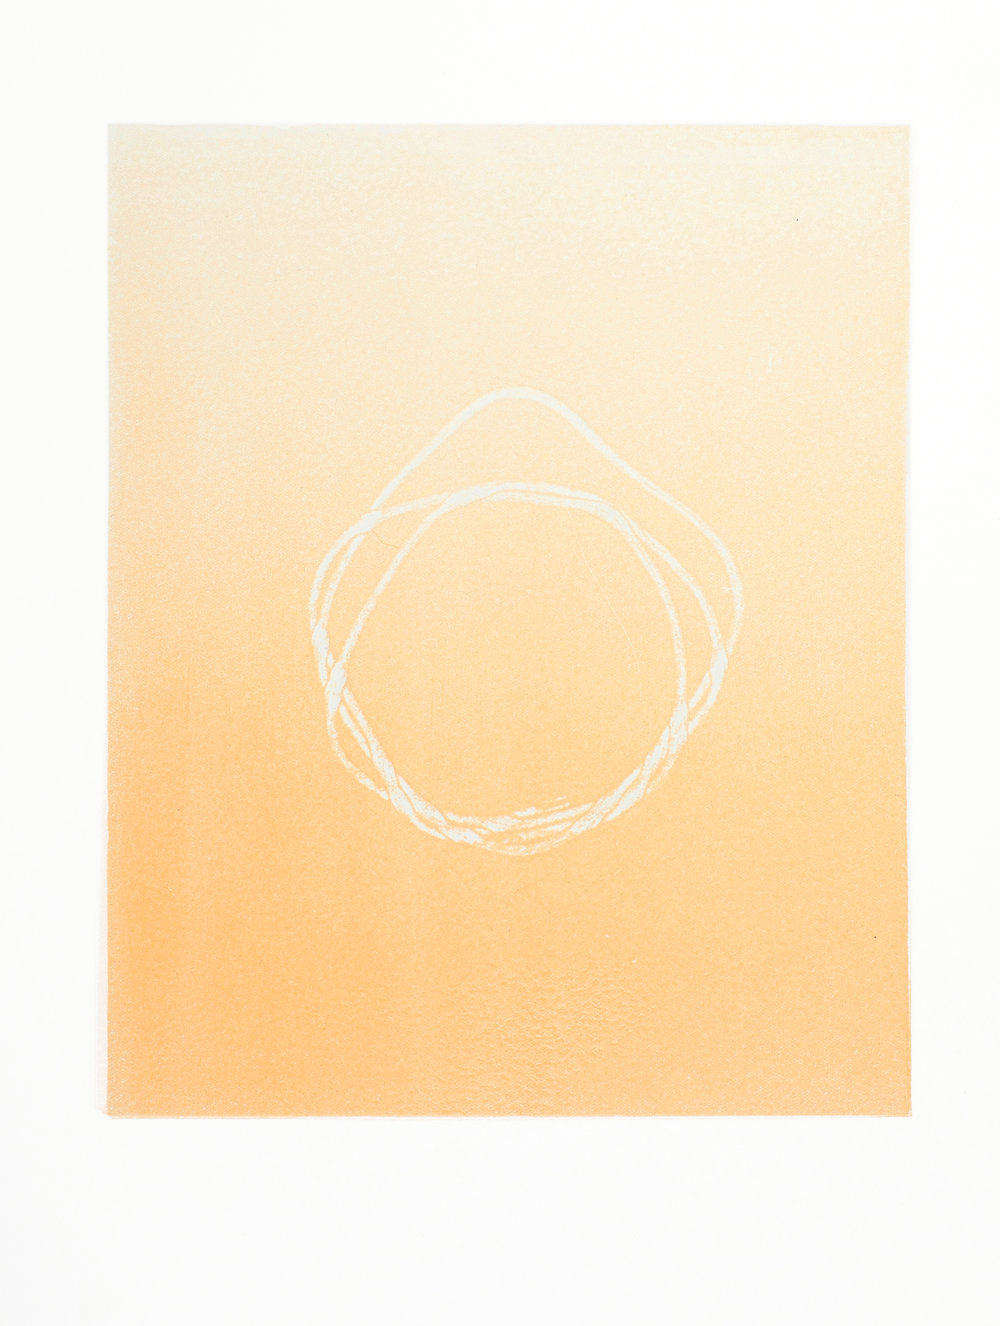 Untitled (yellow 1, from Overlap series)